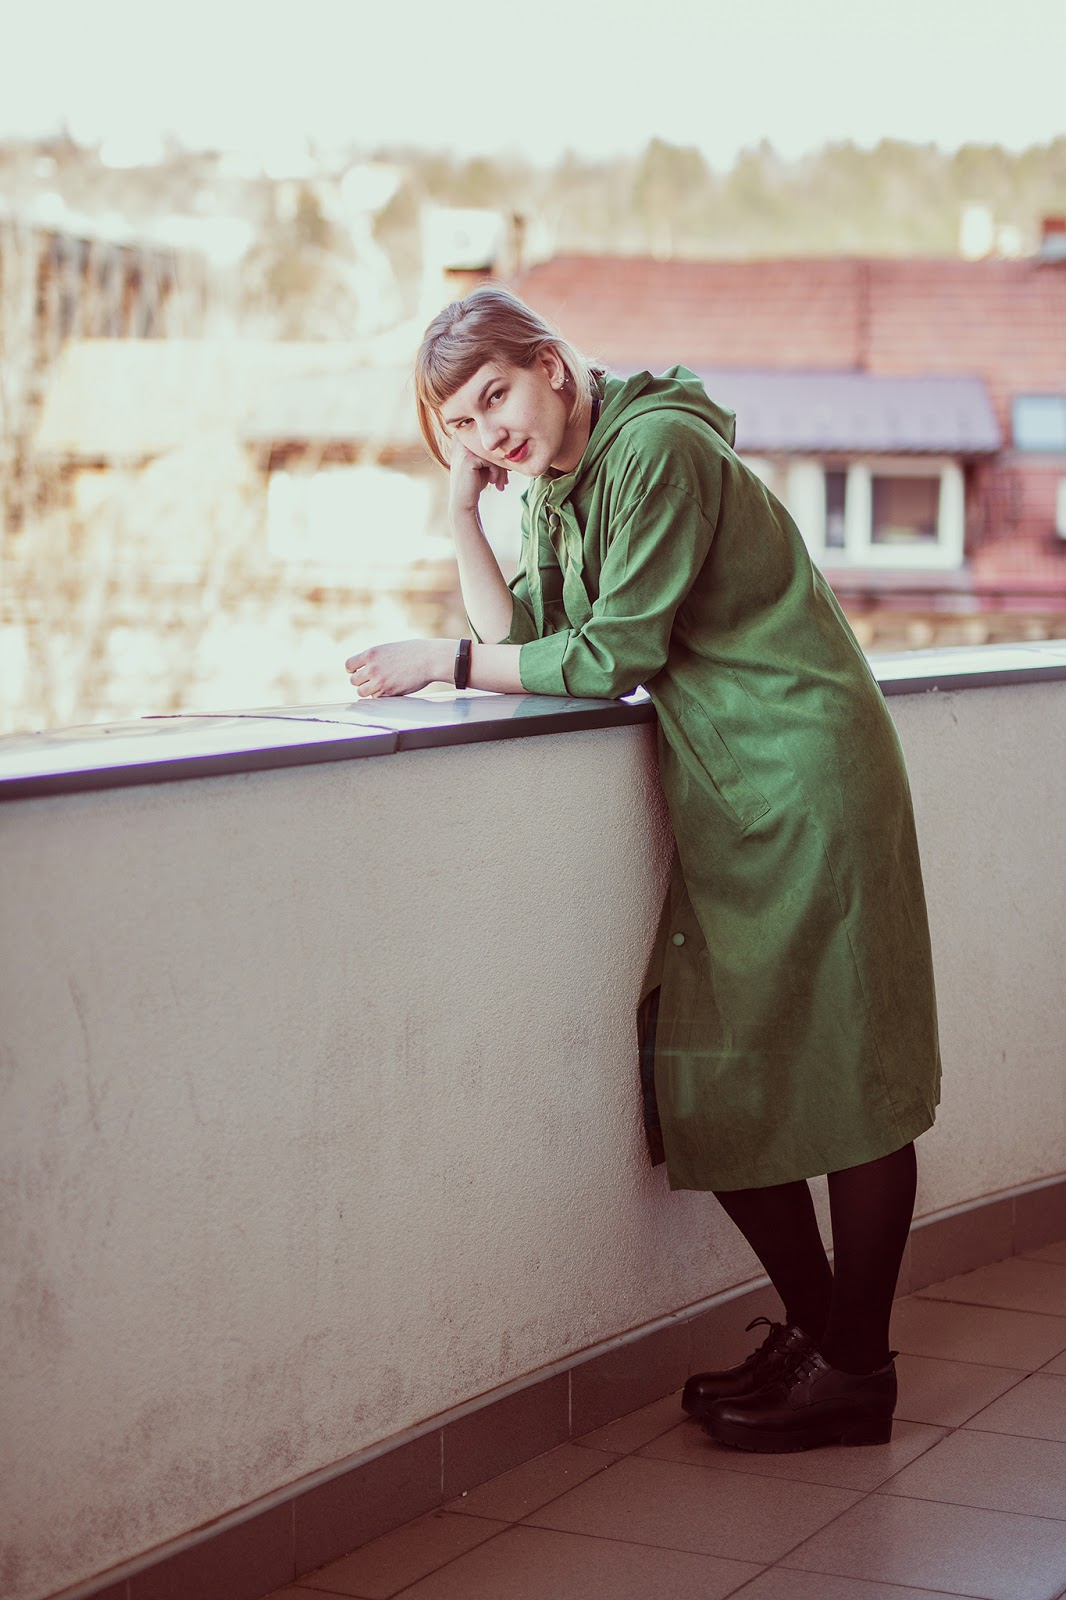 filipa canic, youarethepoet, you are the poet blog, filipa canic blog, zaful, trench coat, haris rustemovic photography,